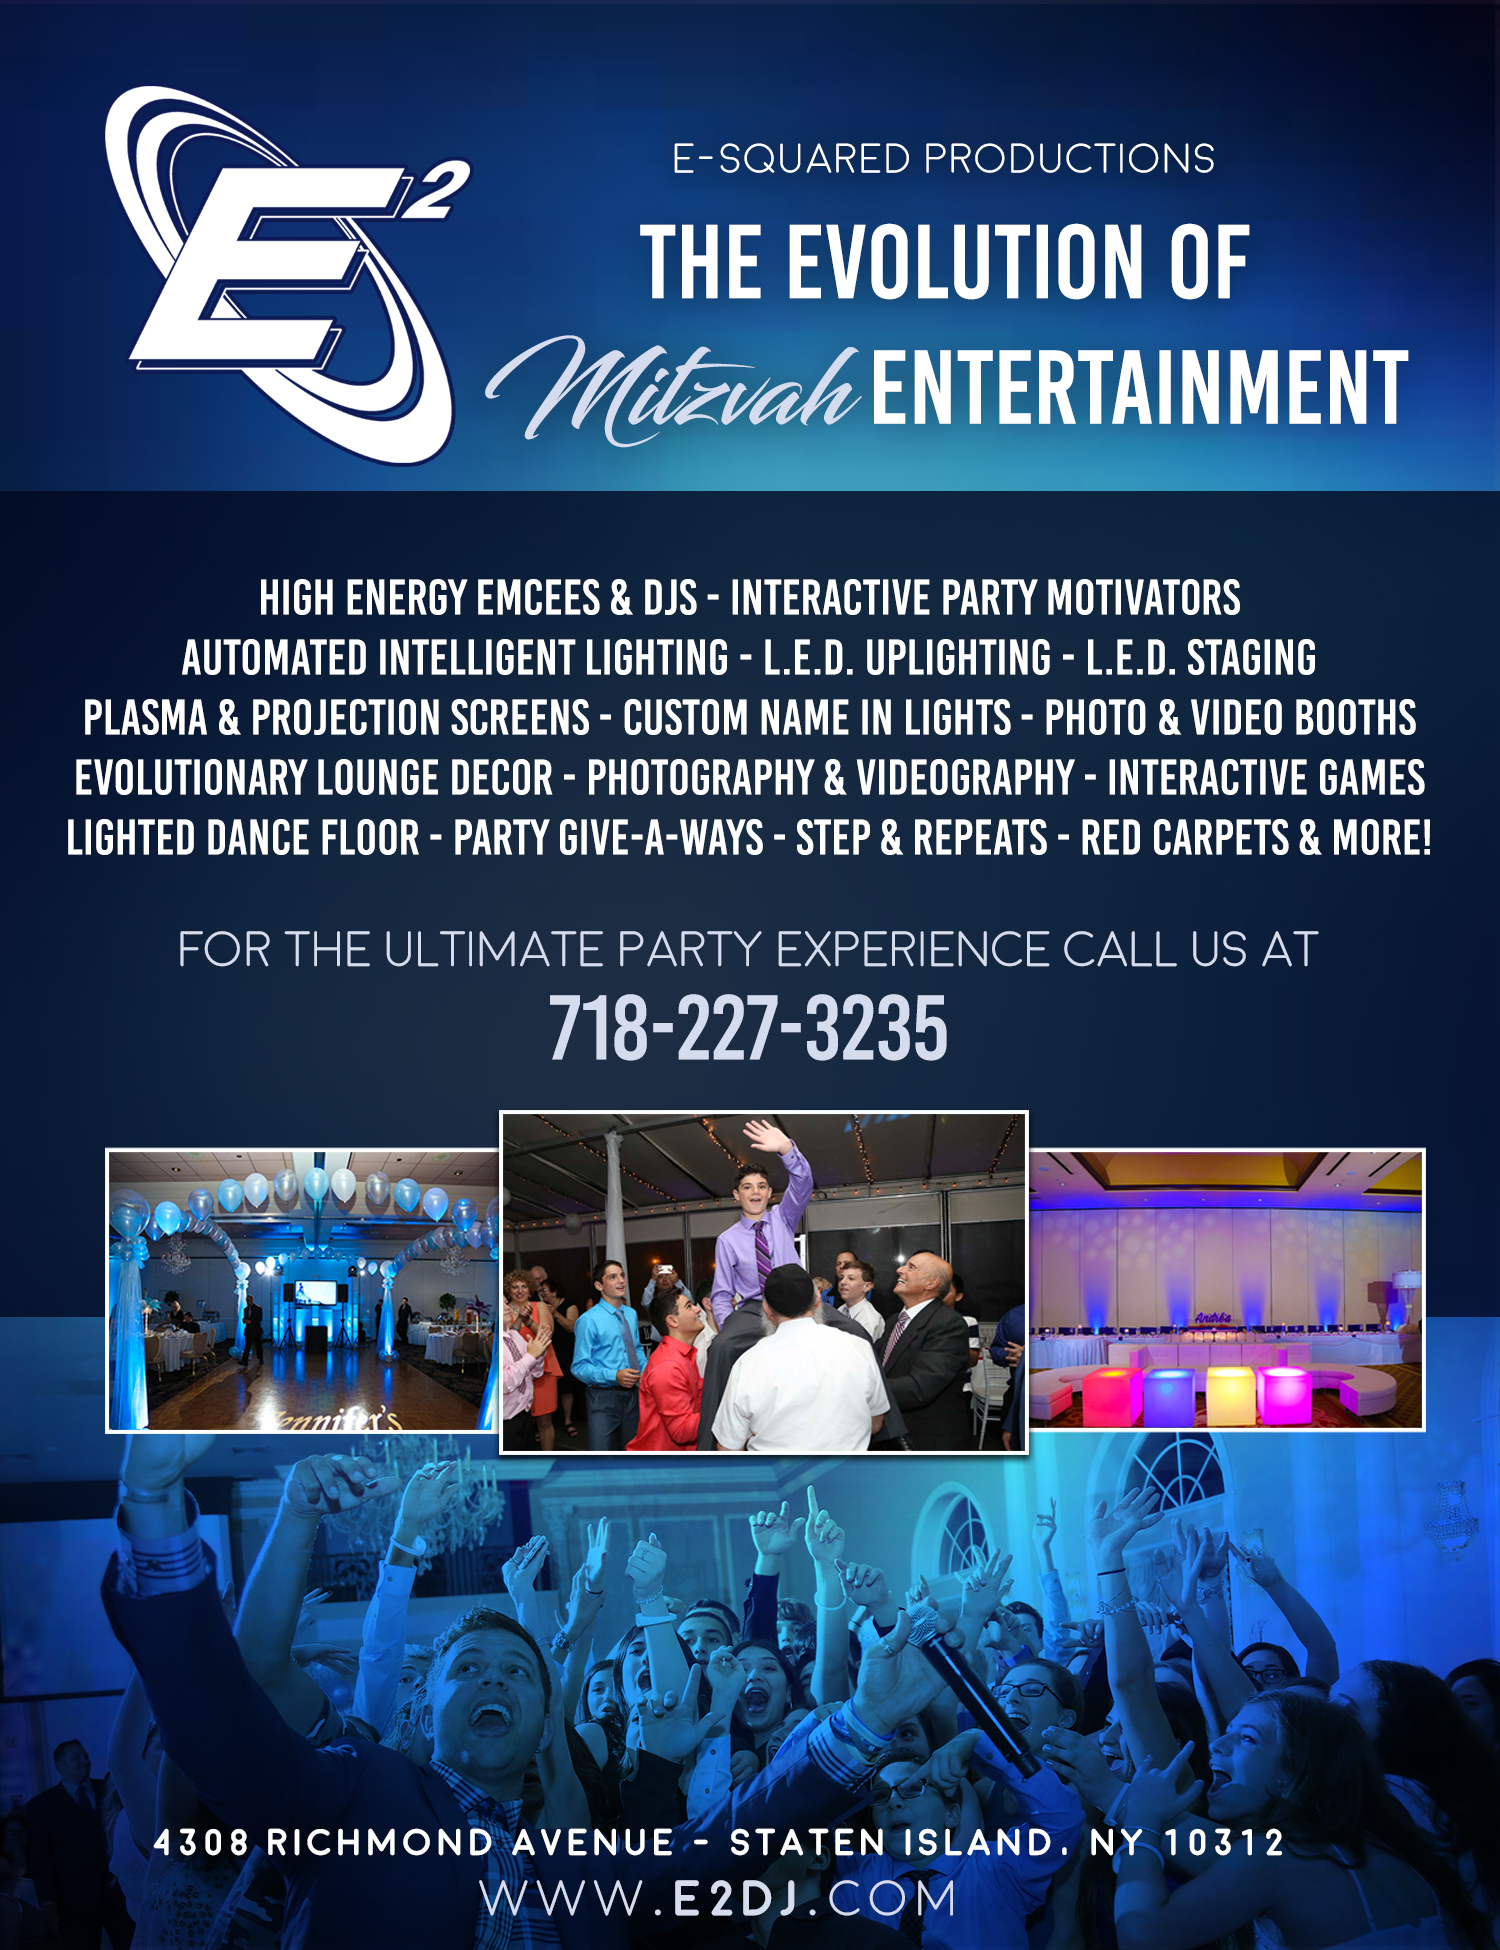 mitzvah entertainment - THE ULTIMATE PARTY EXPERIENCE